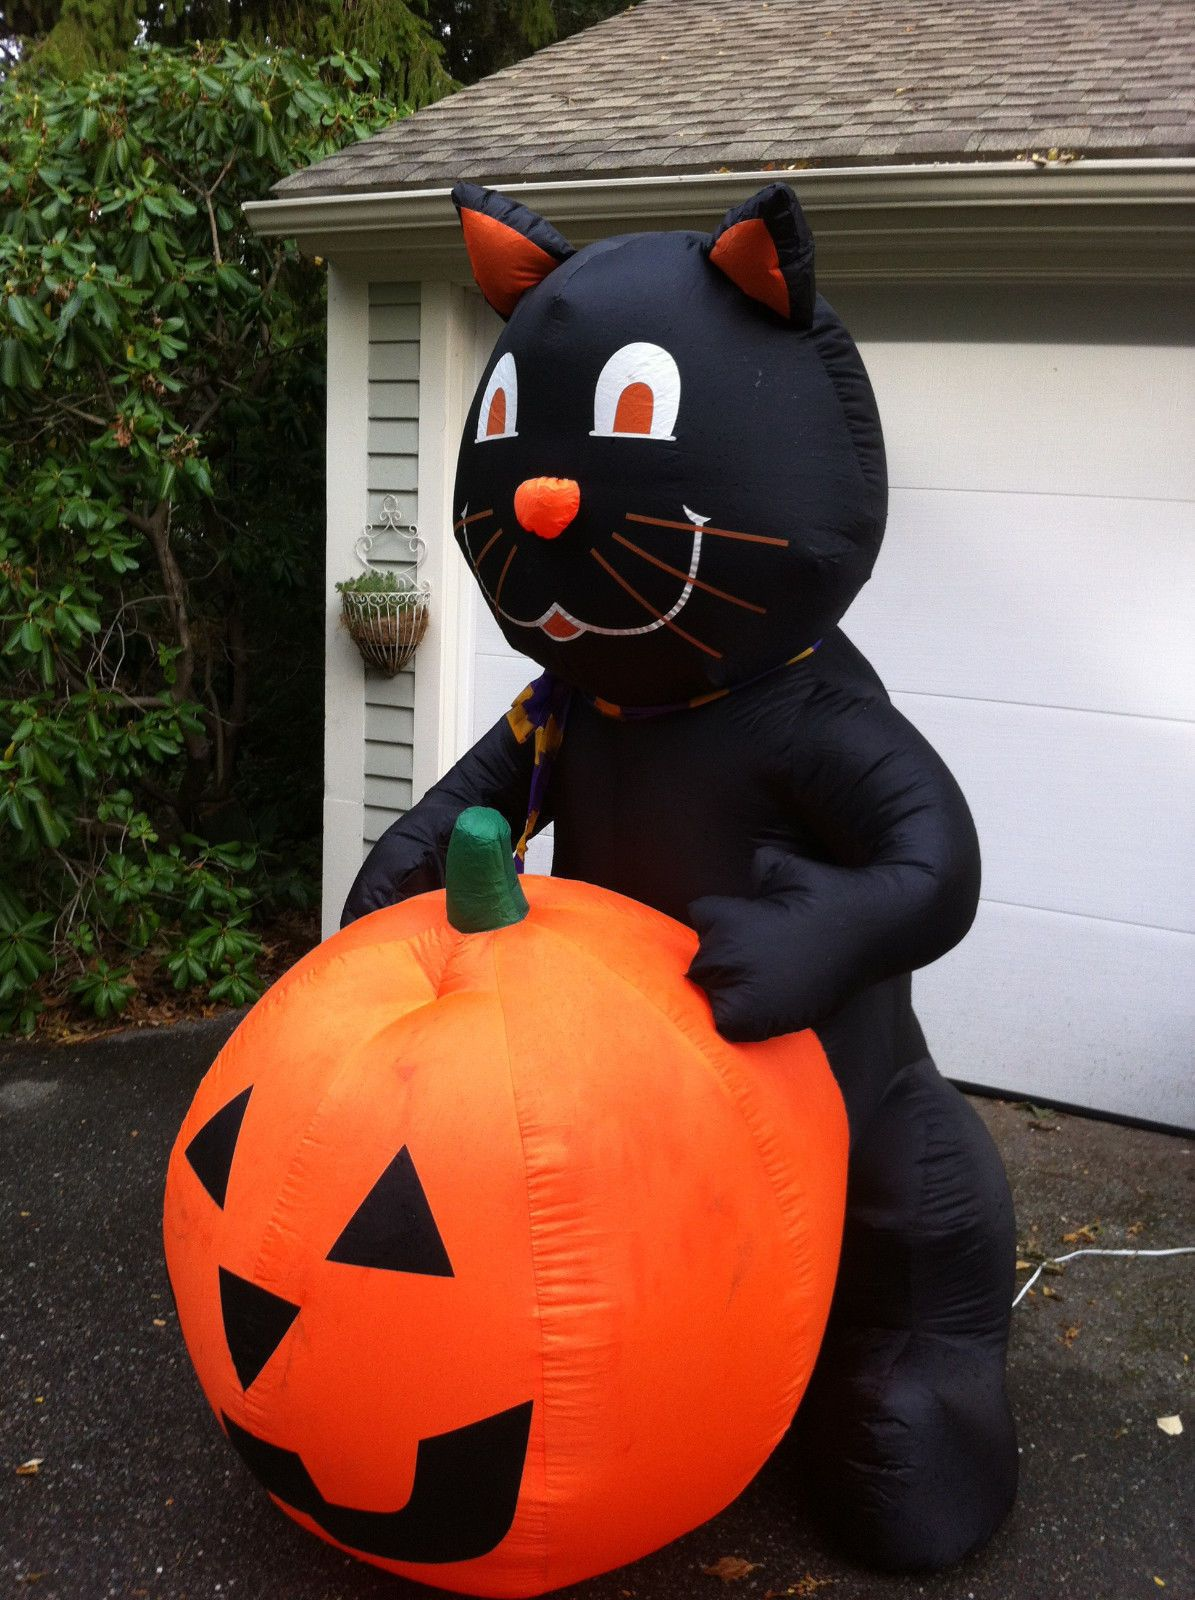 Gemmy Halloween Airblown Inflatable Black Cat Jack O Lantern Pumpkin 7 Tall Jack O Lantern Gemmy Cat Jack